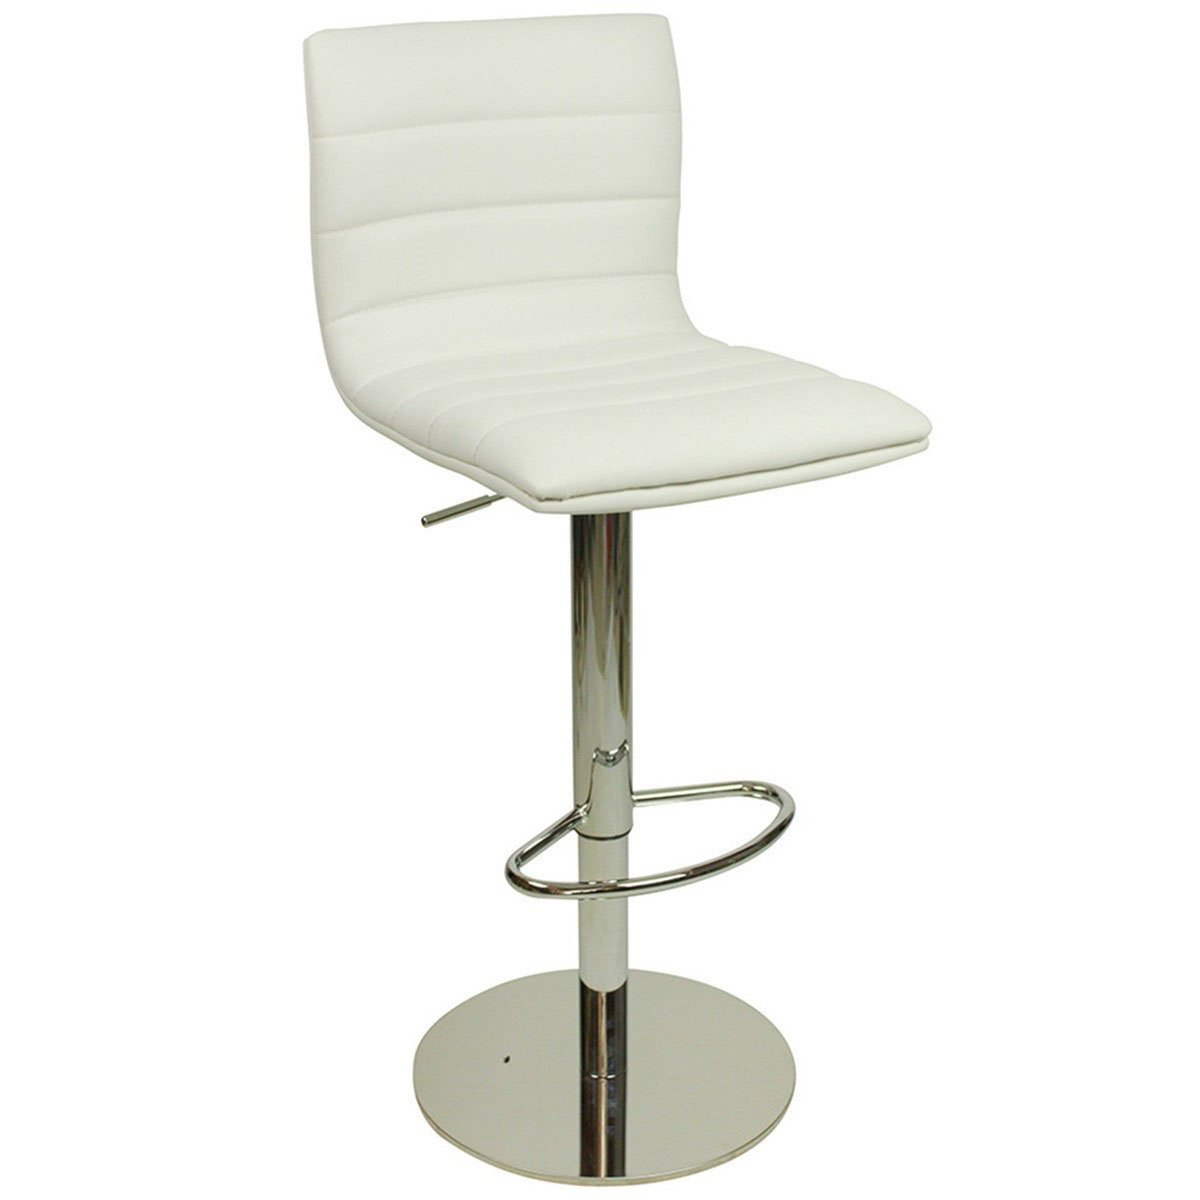 Deluxe Aldo Bar Stool White Size X 415mm X 390mm